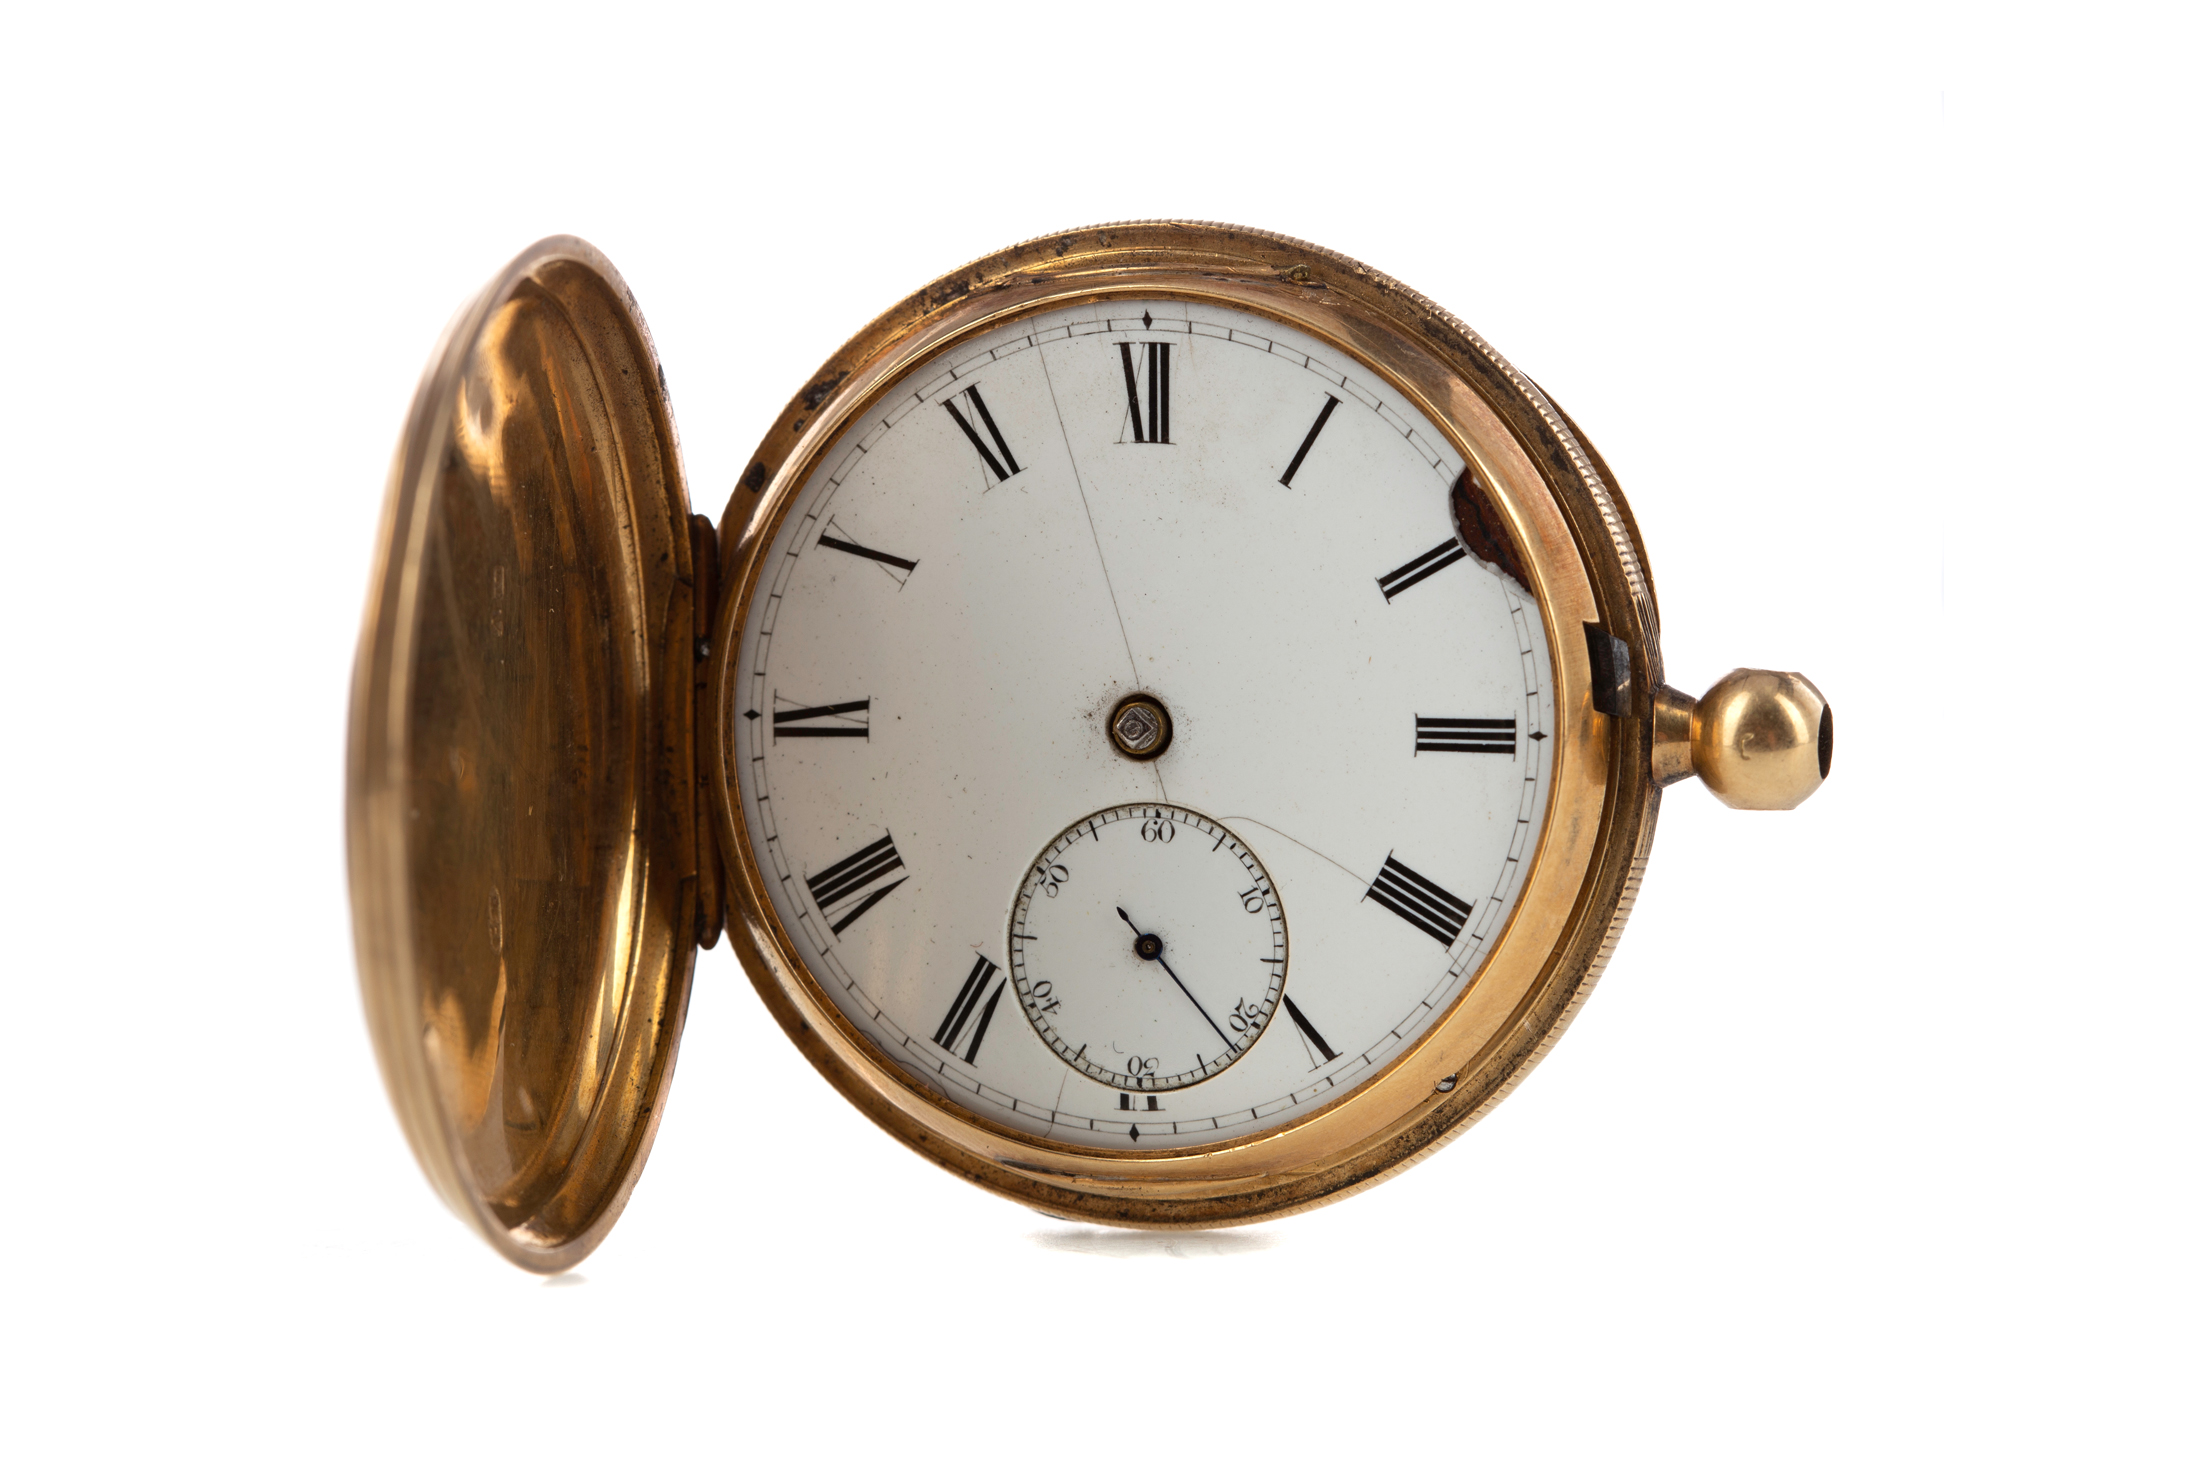 EIGHTEEN CARAT GOLD FULL HUNTER POCKET WATCH, the round white dial with Roman hour markers, - Image 2 of 6